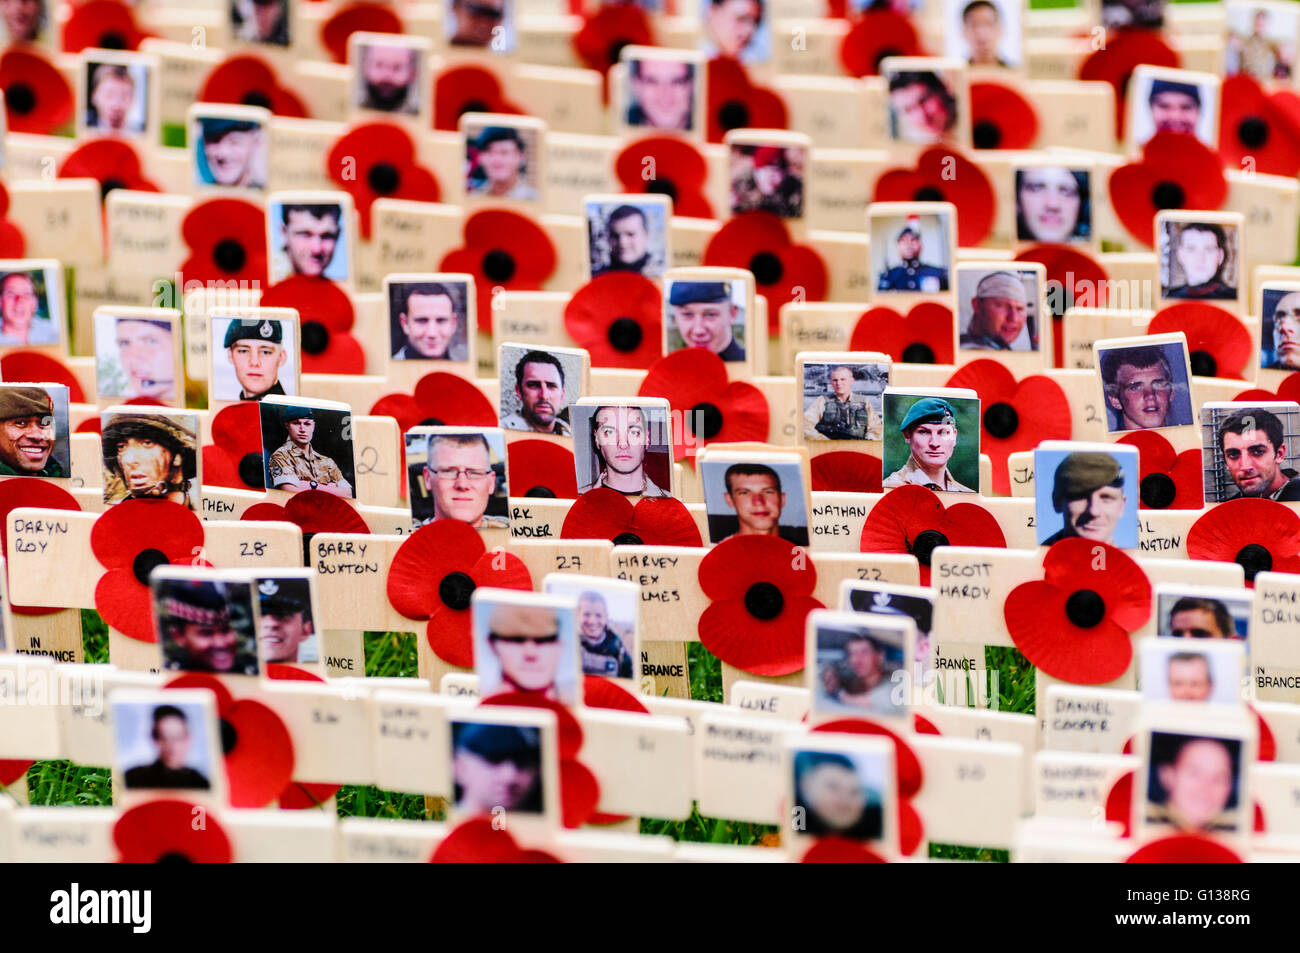 Wooden crosses with poppies and photographs in remembrance of servicemen and women killed in action. - Stock Image